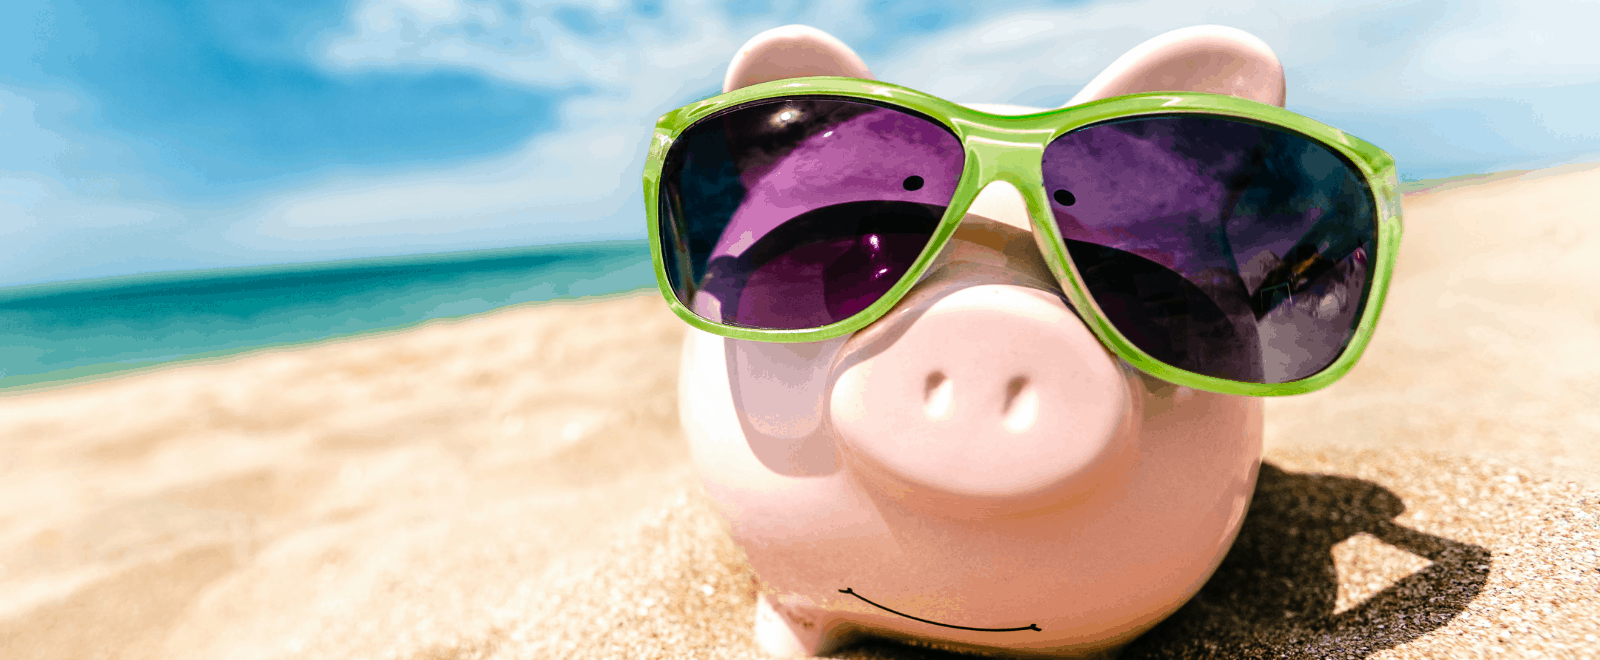 102 Personal Finance Tips for 2019